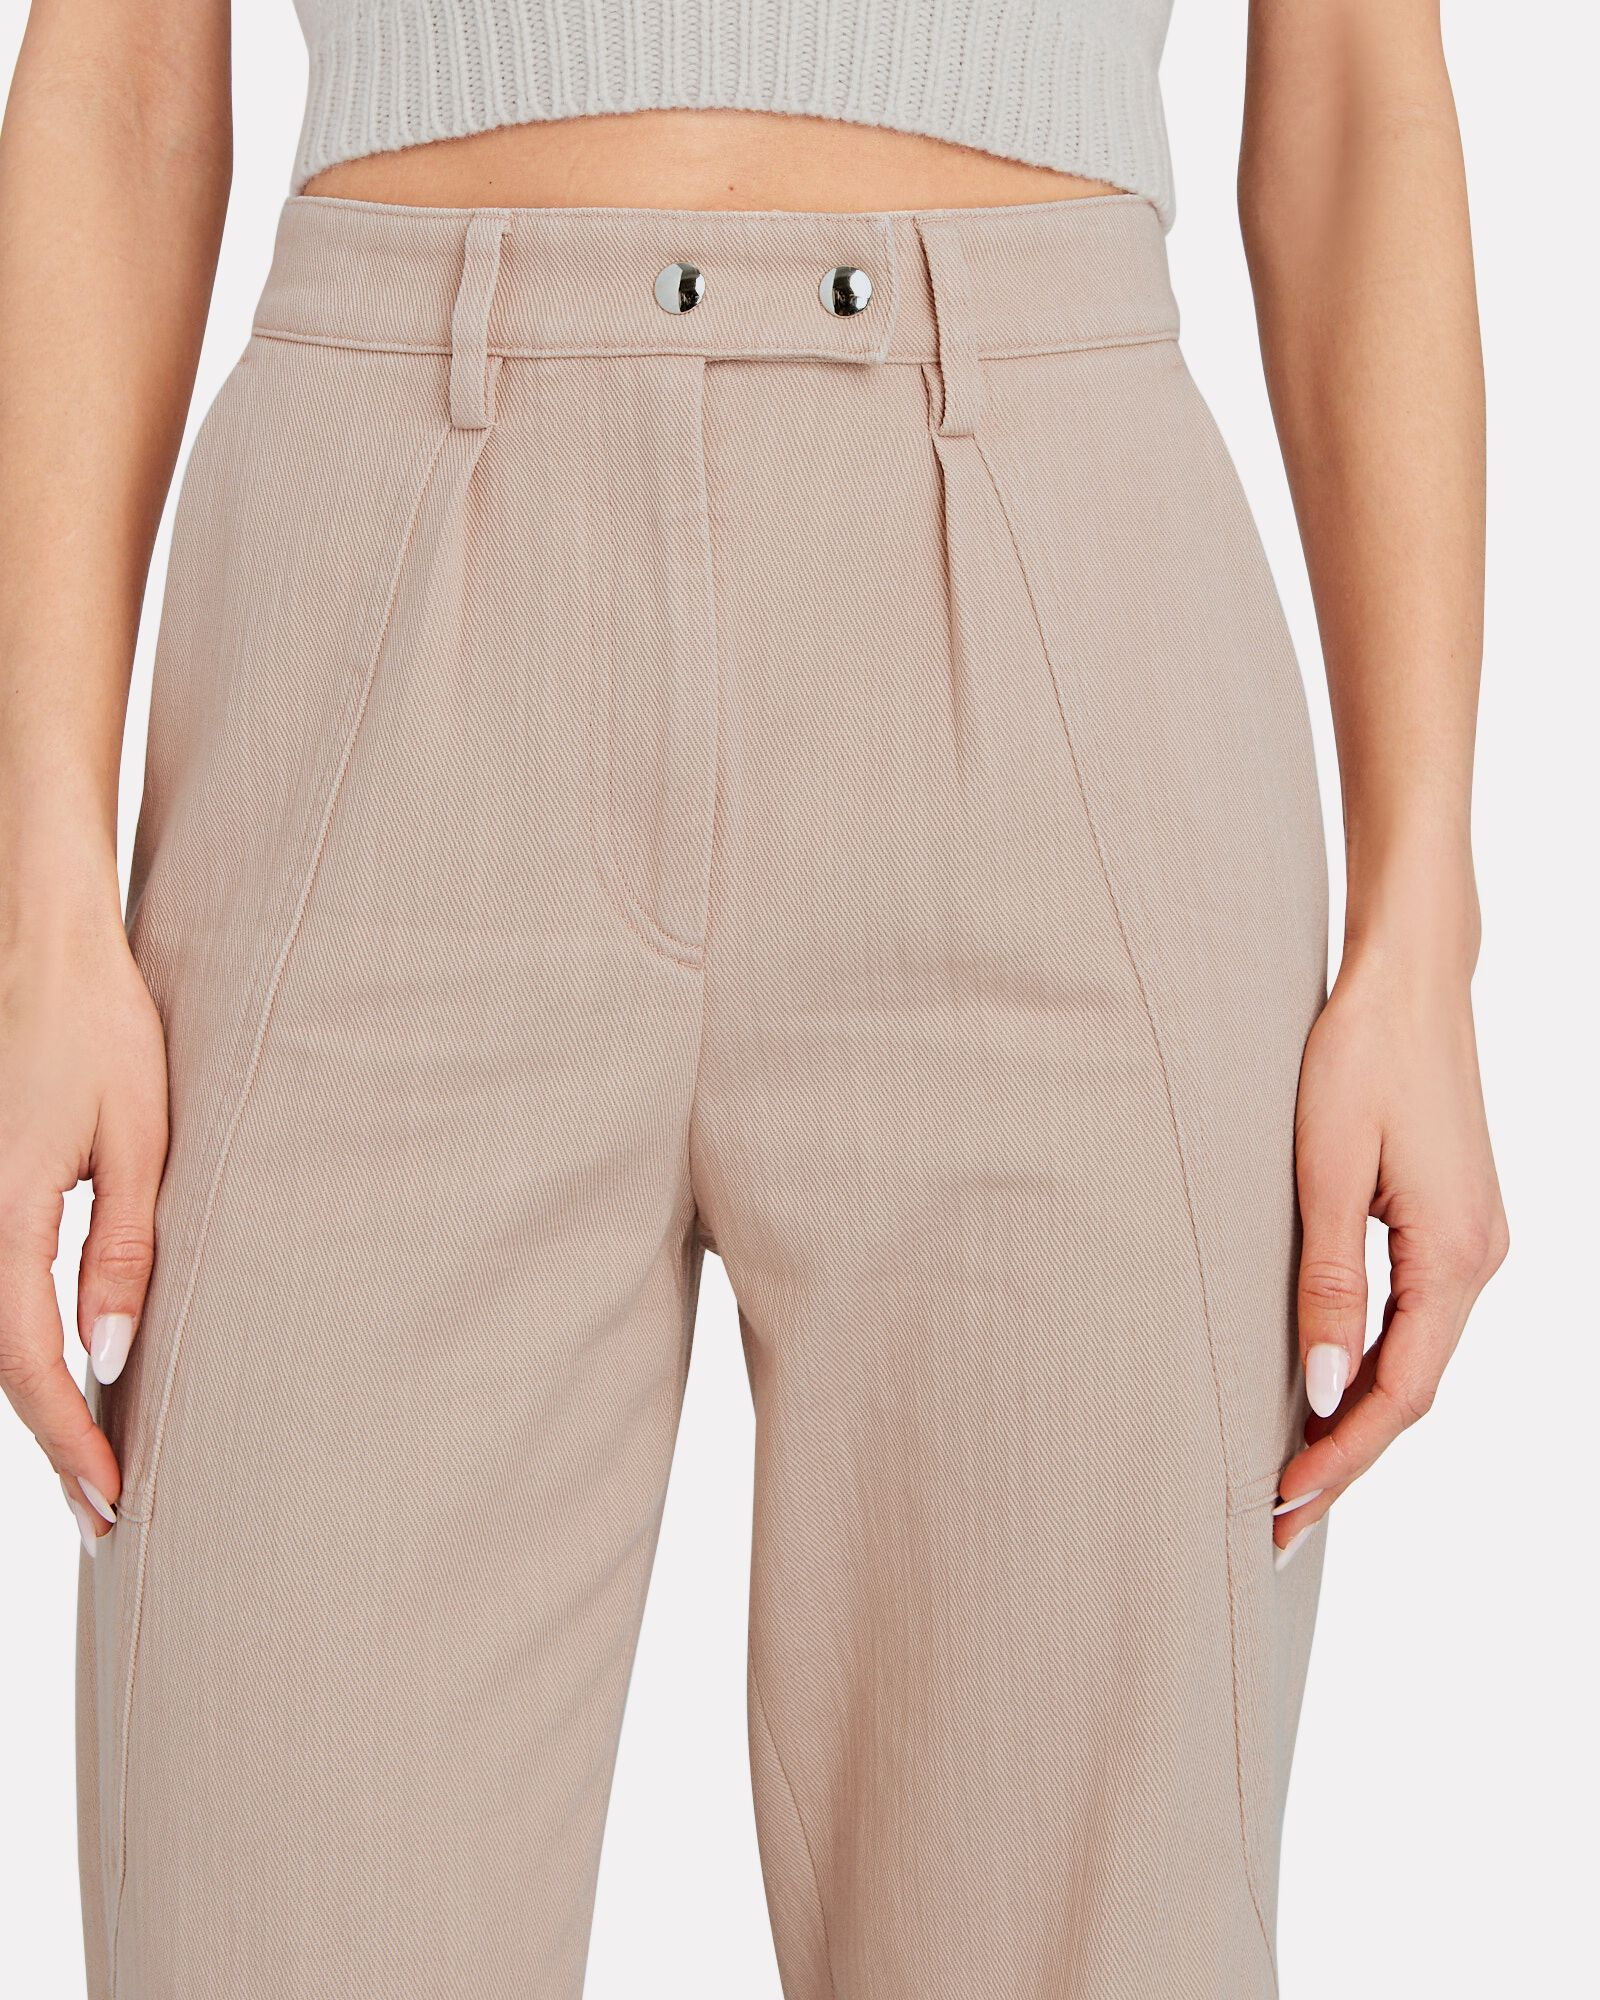 Viklay High-Rise Cotton Trousers, PINK, hi-res